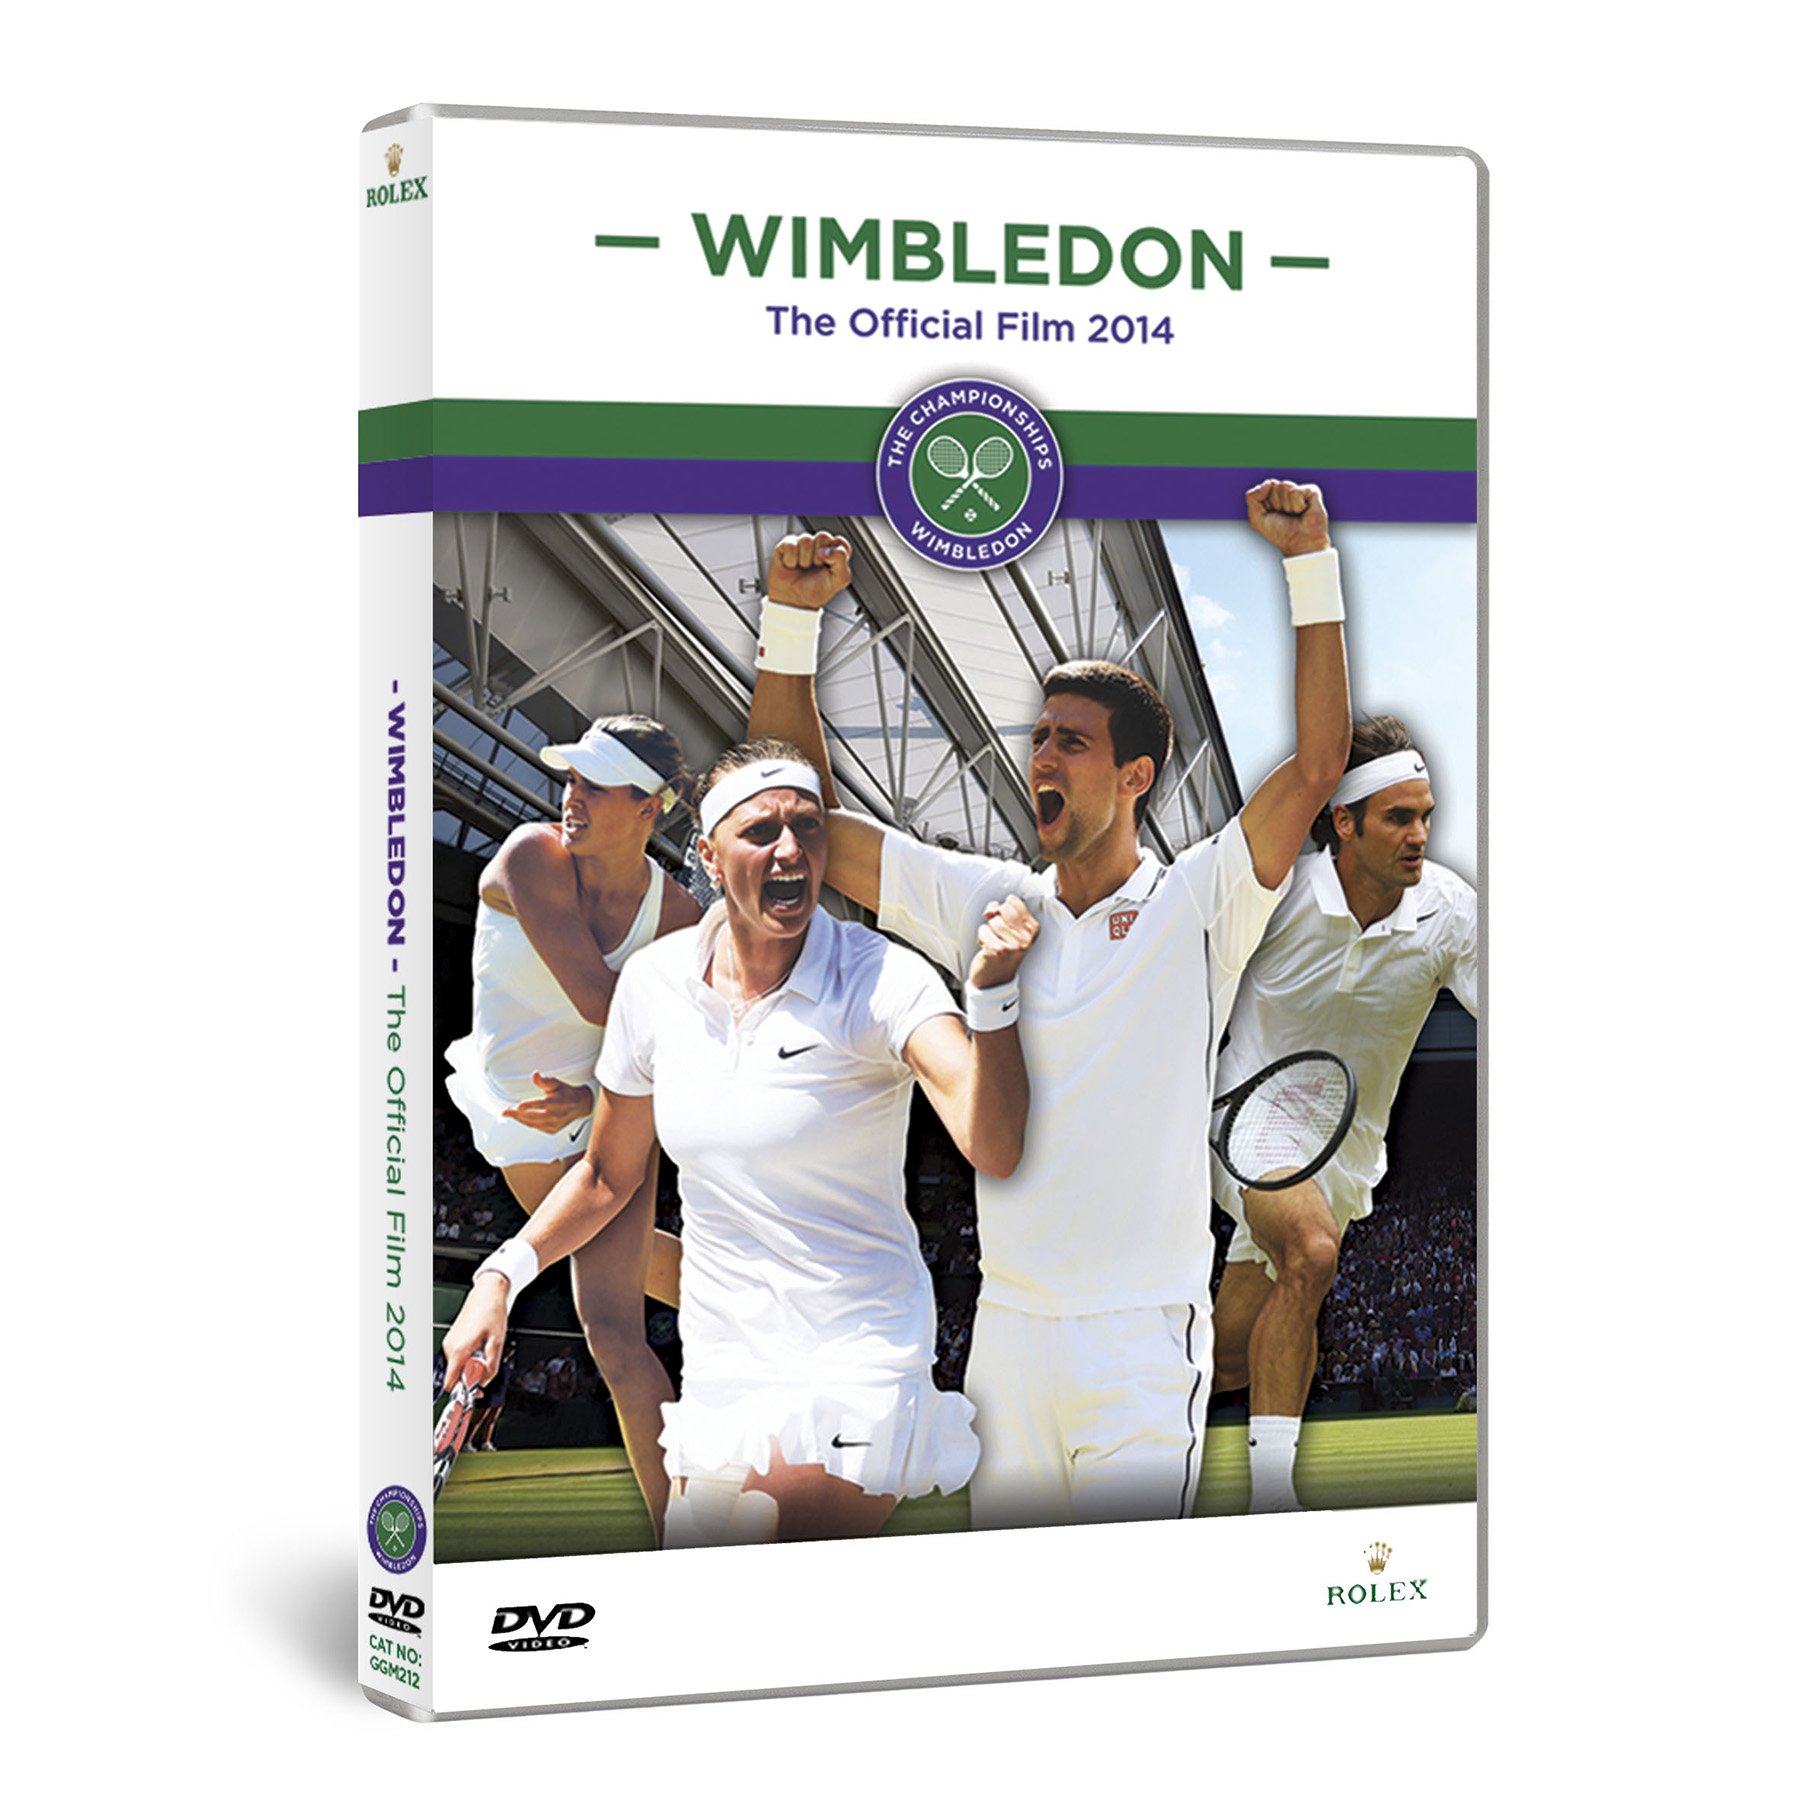 Wimbledon The Official Film 2014